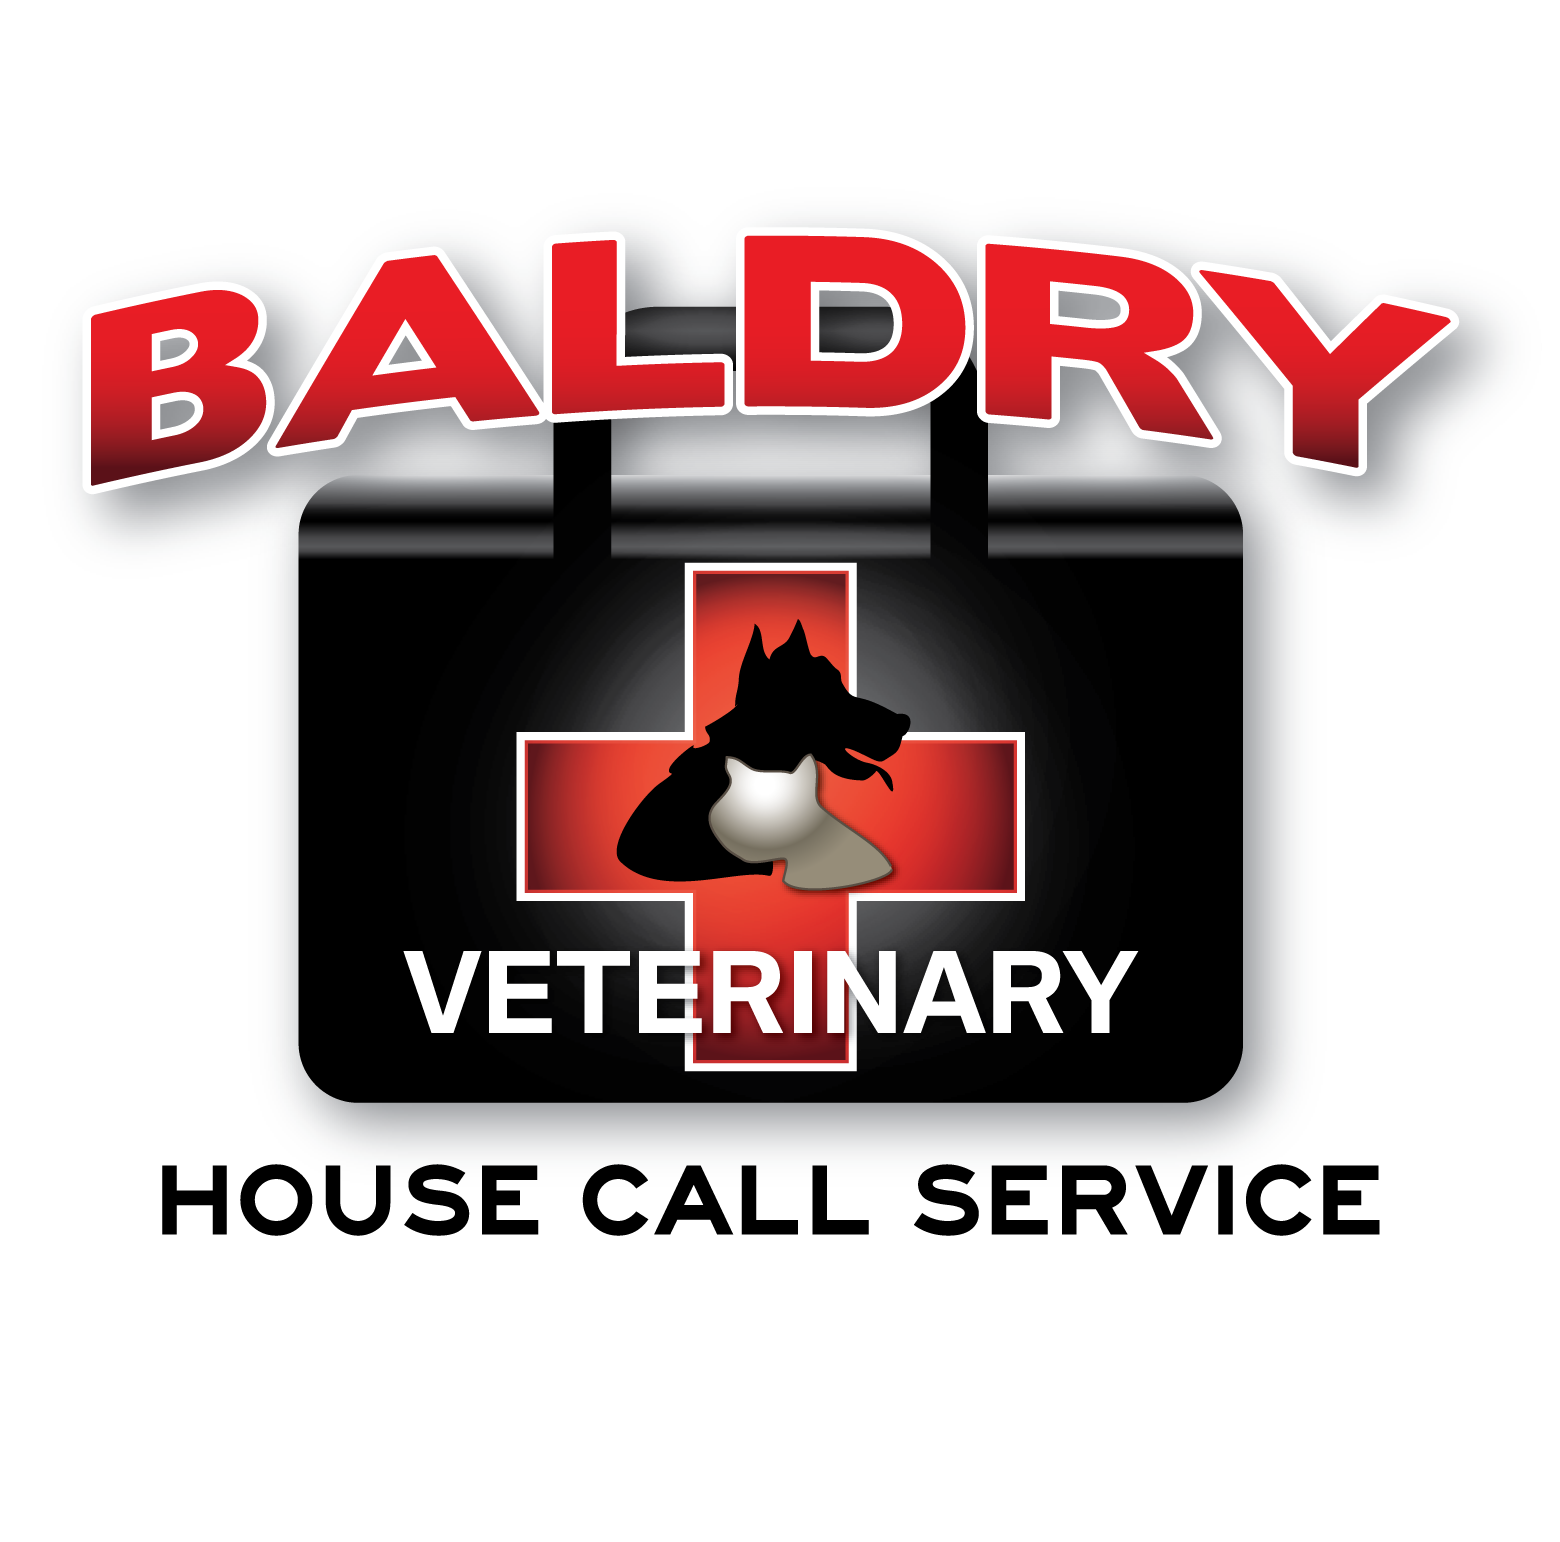 Logo Design by Teresa Abney - Entry No. 76 in the Logo Design Contest Captivating Logo Design for Baldry Veterinary House Call Service.